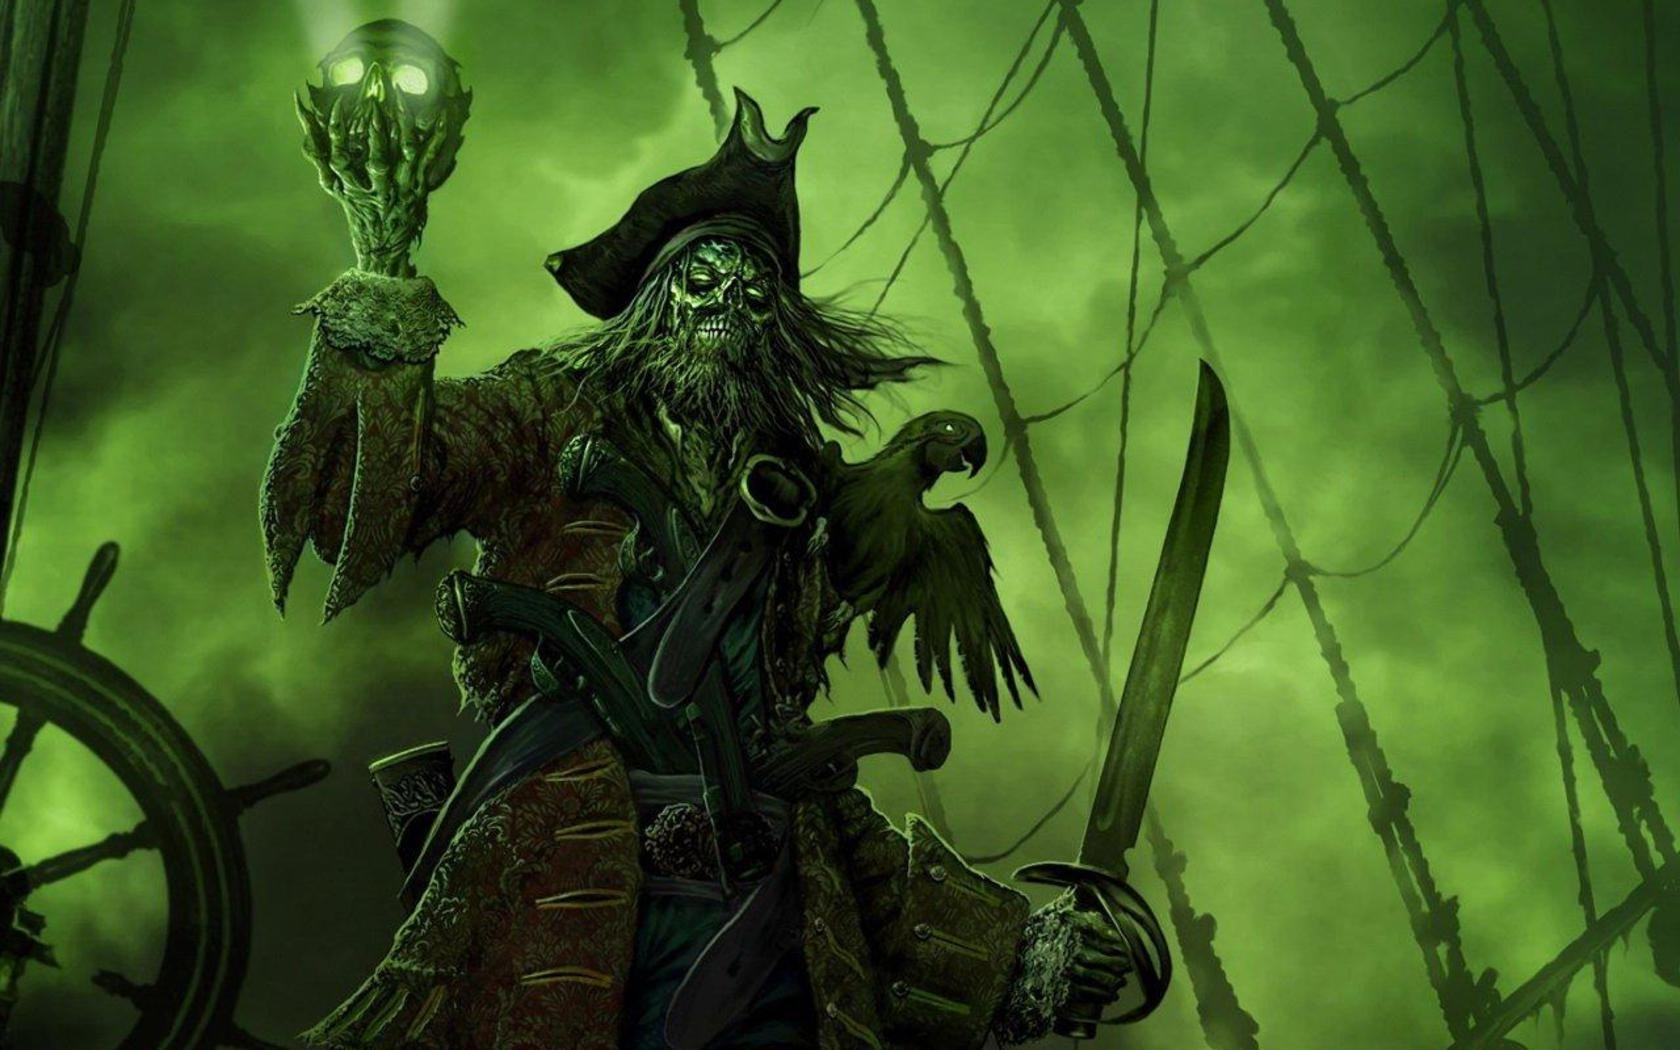 3d Ghost Wallpaper Download Sea Old Ship Pirates Green Spooky Wallpapers Hd